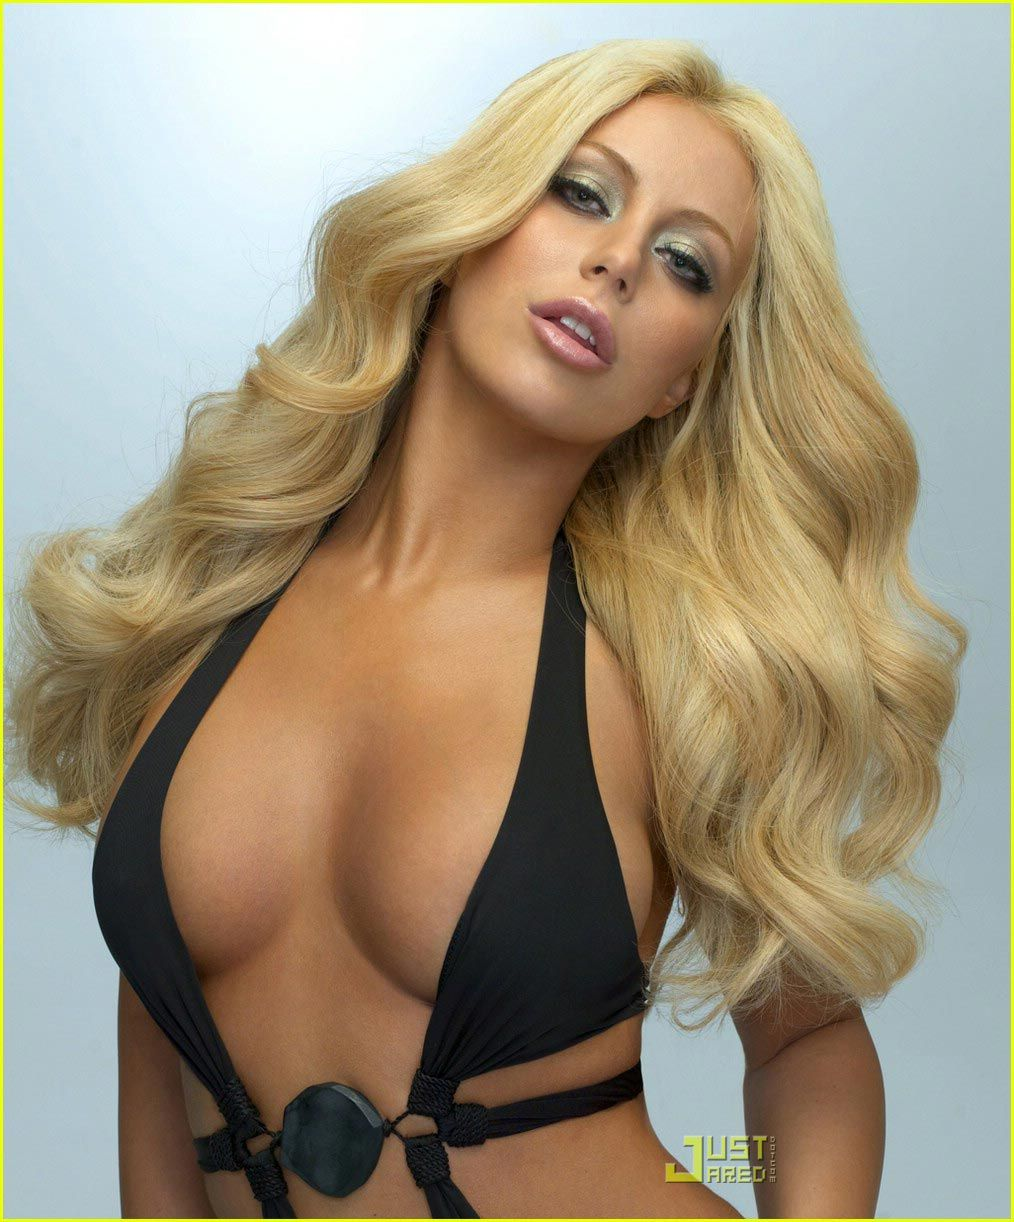 Hot Aubrey O'Day nude (18 photo), Tits, Leaked, Boobs, lingerie 2015